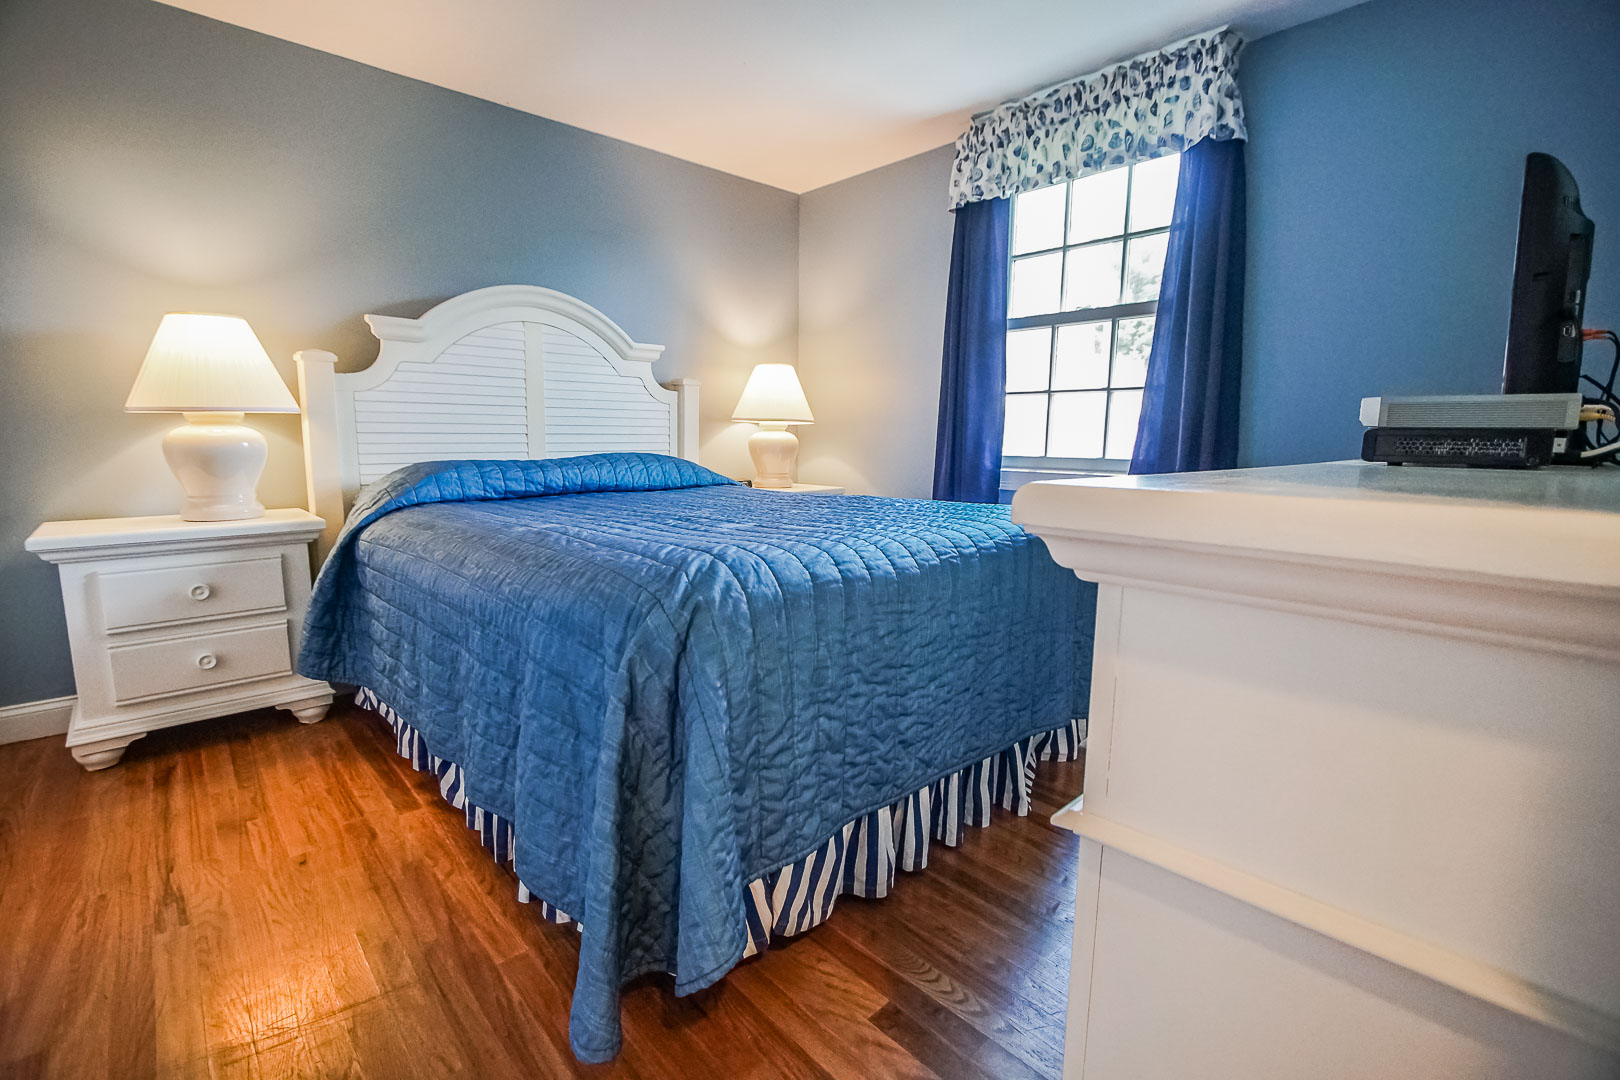 A cozy bedroom at VRI's Beachside Village Resort in Massachusetts.